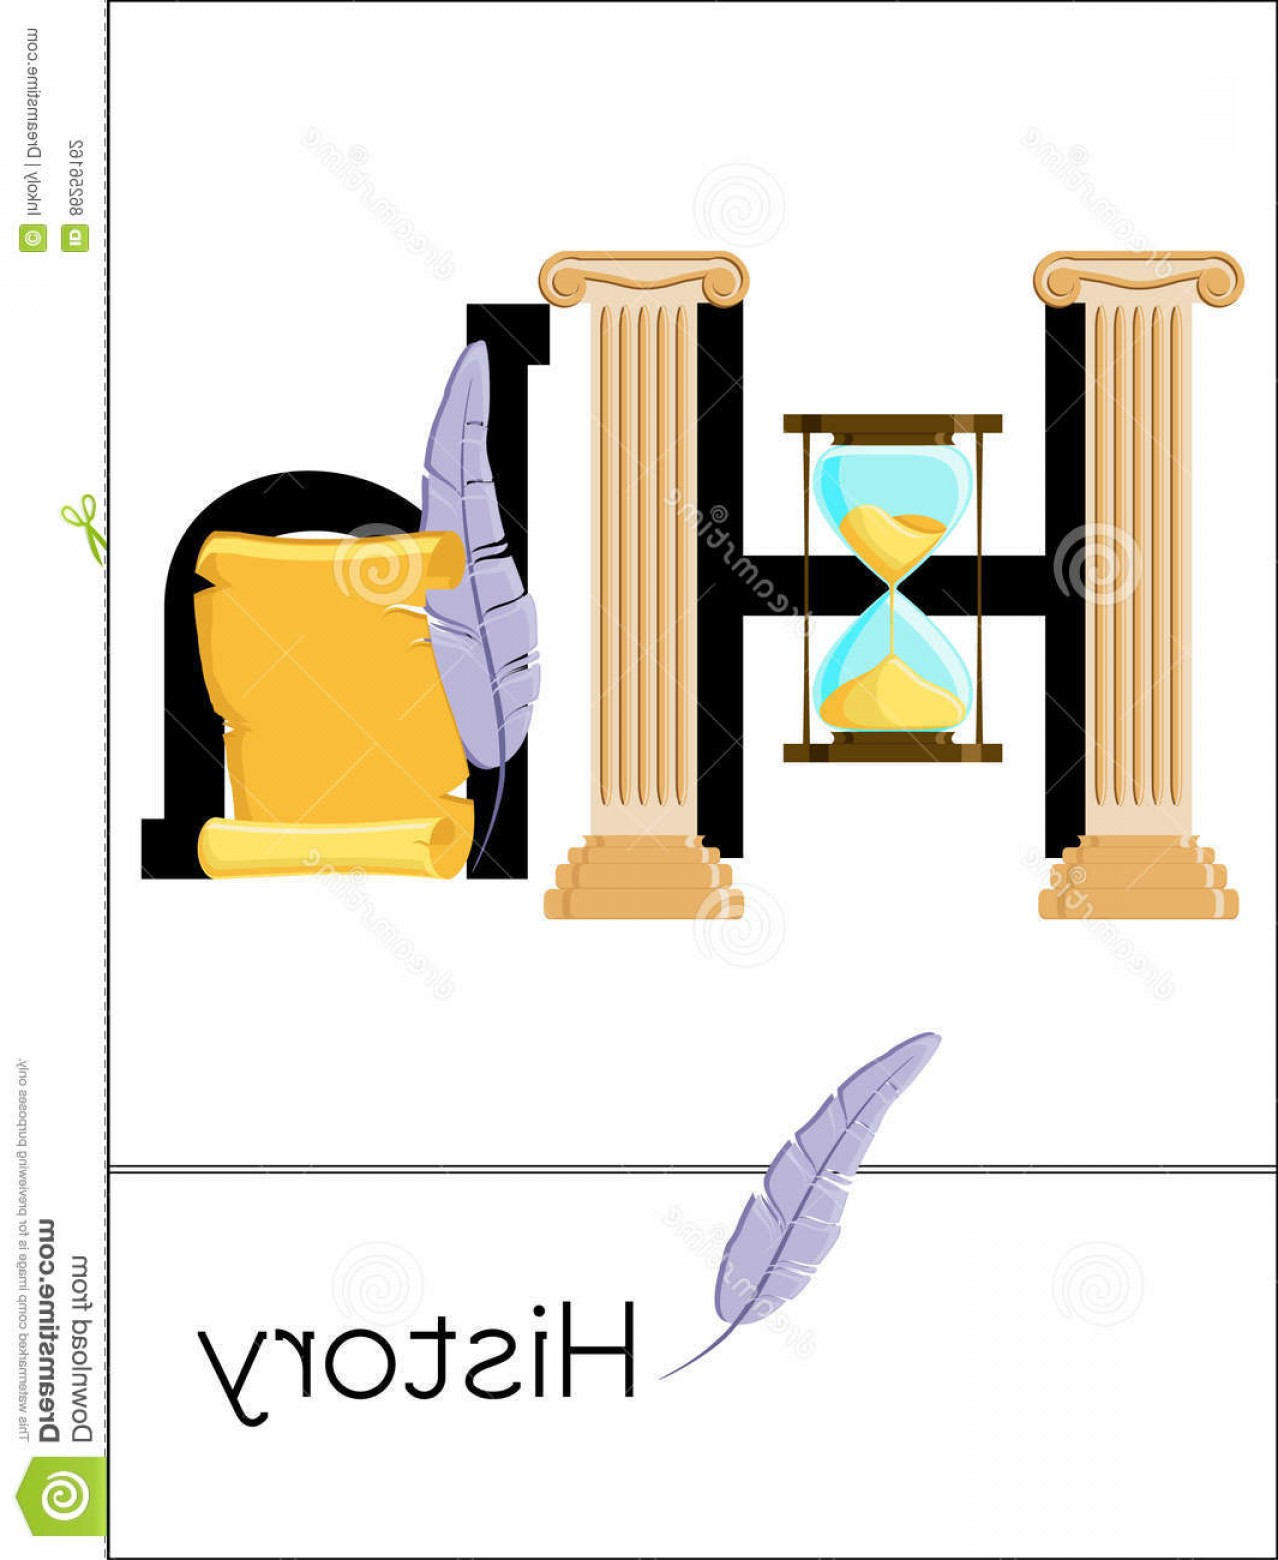 Vector ABC History: Stock Illustration Flash Card Letter H History Science Alphabet Kids Puzzle Abc Cards Series Cartoon Vector Illustration Flat Image